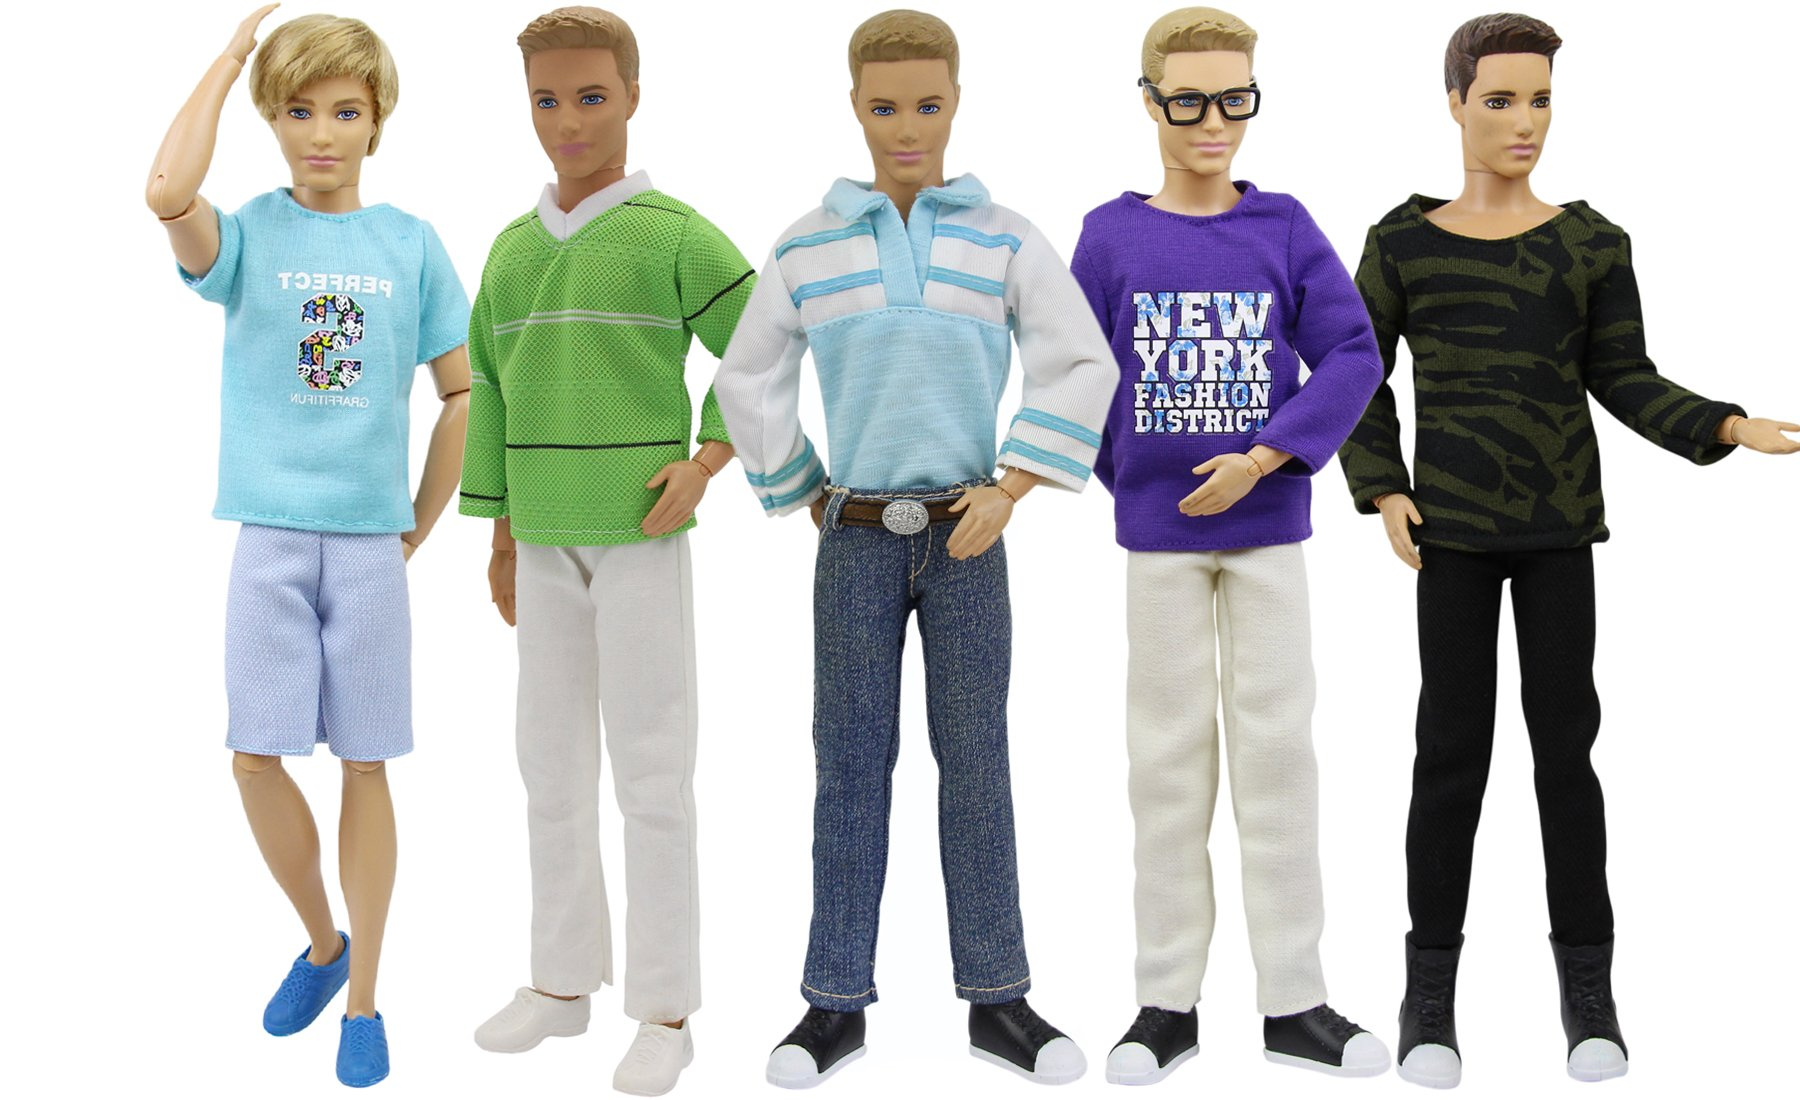 K.T. Fancy Lot of 5 PCS Fashion Casual Wear Clothes/Outfit for Barbie's Boy Friend Ken Doll